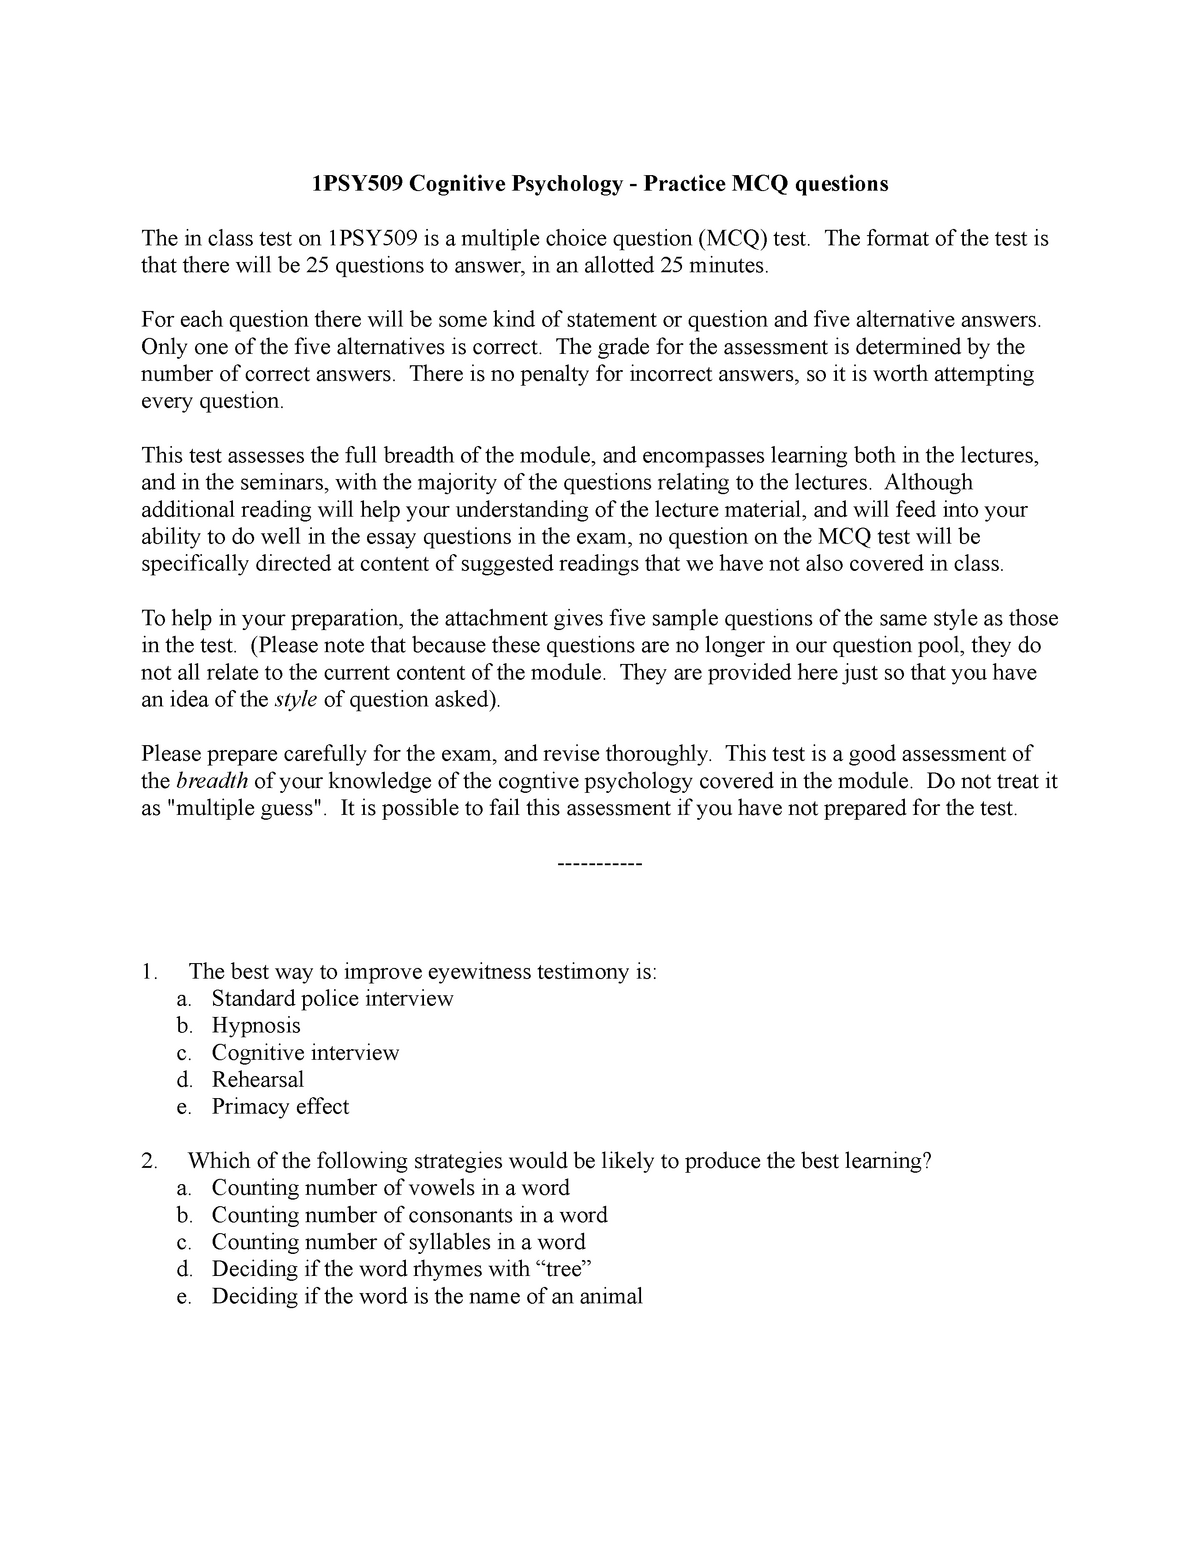 Sample/practice exam 4 May 2015, questions and answers - StuDocu